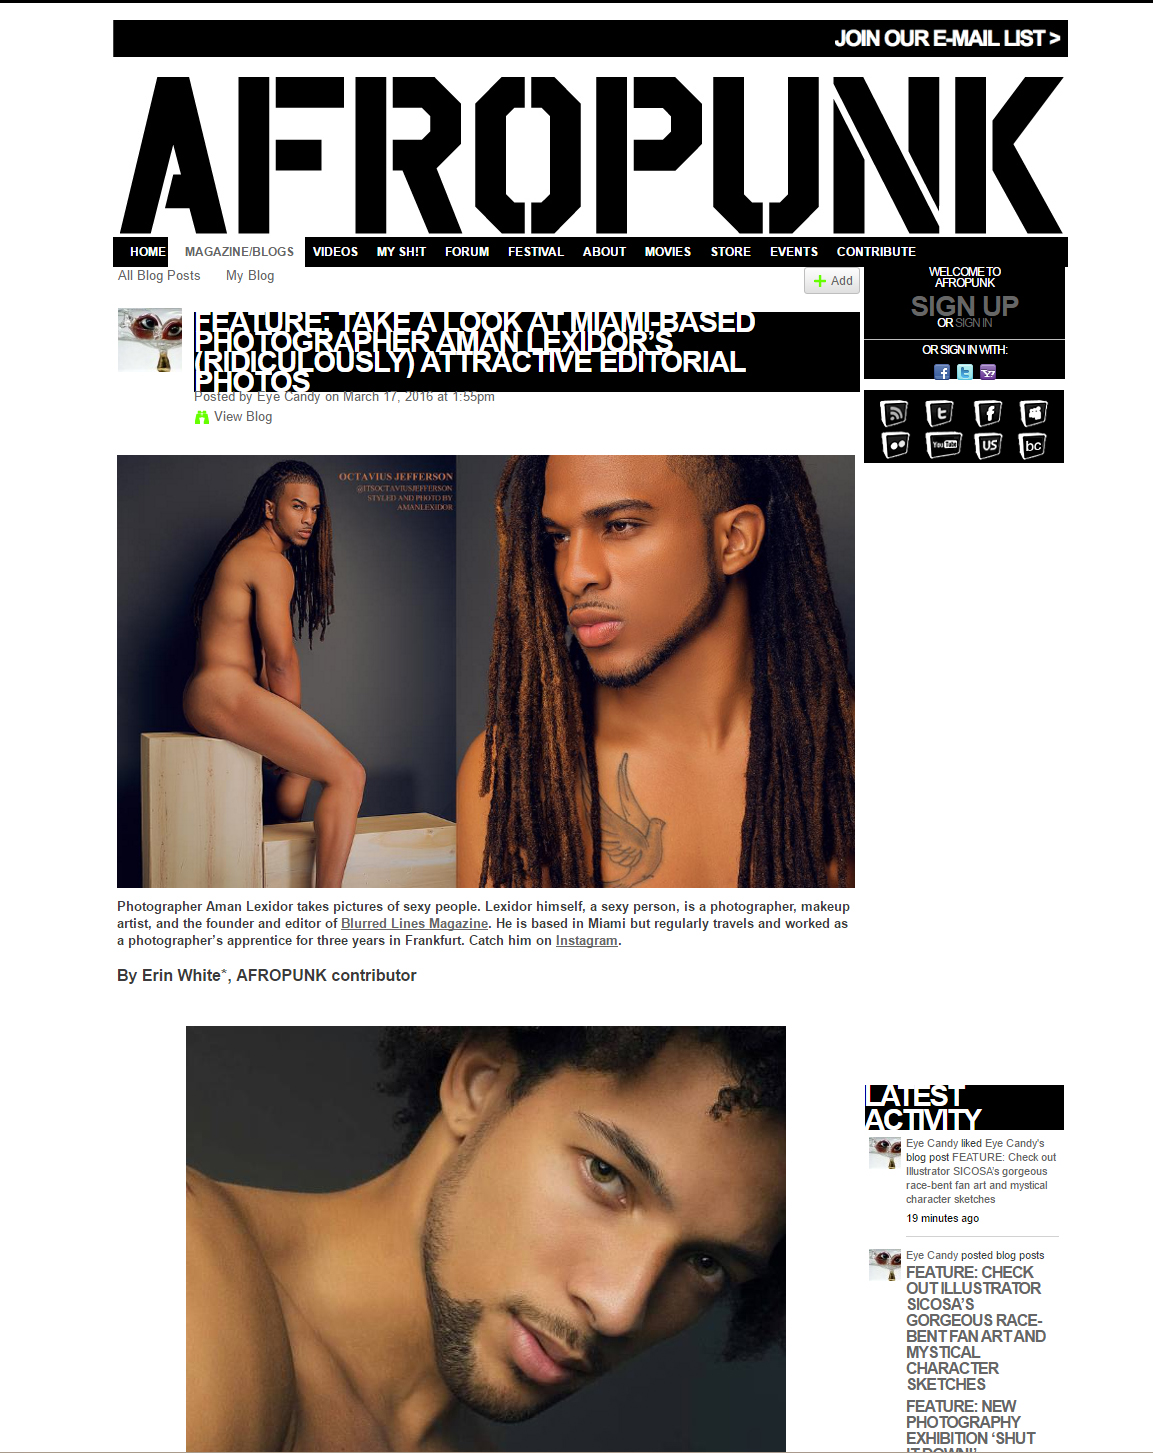 THANKS FOR THE LOVE AND SUPPORT AFRO PUNK